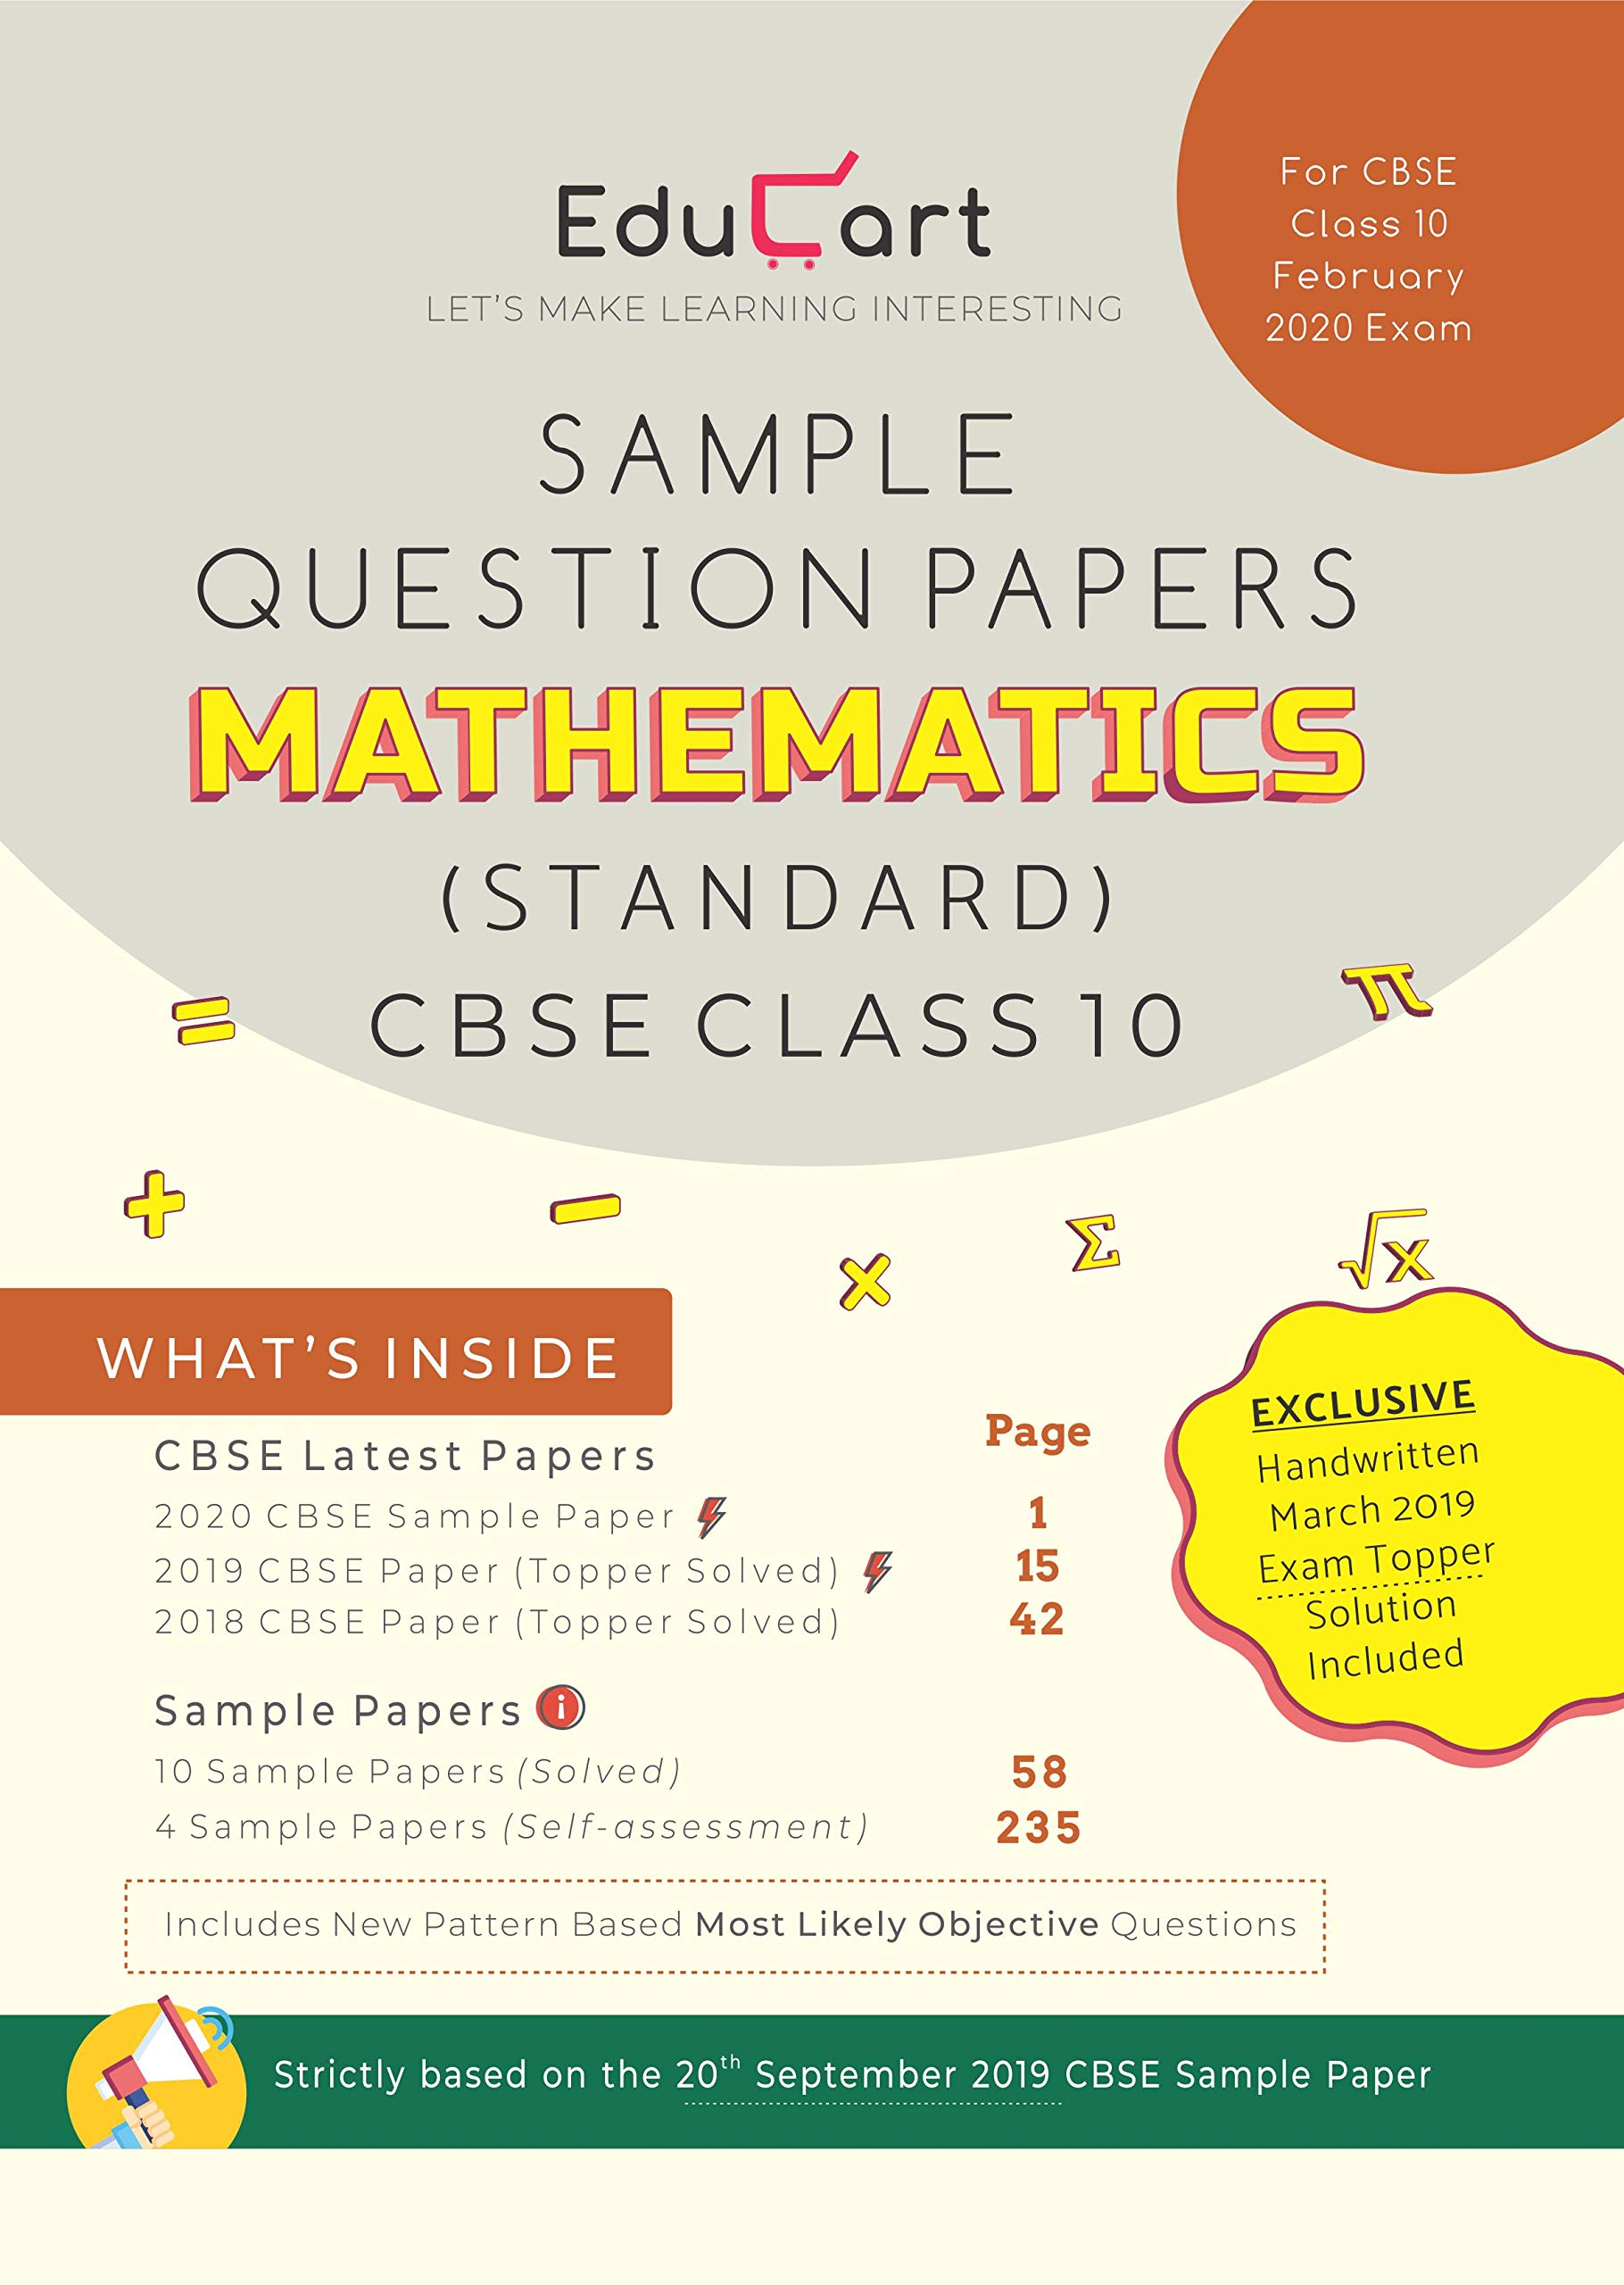 Educart CBSE Sample Question Papers Class 10 Mathematics (Standard) For February 2020 Exam (9387806456) Amazon Price History, Amazon Price Tracker